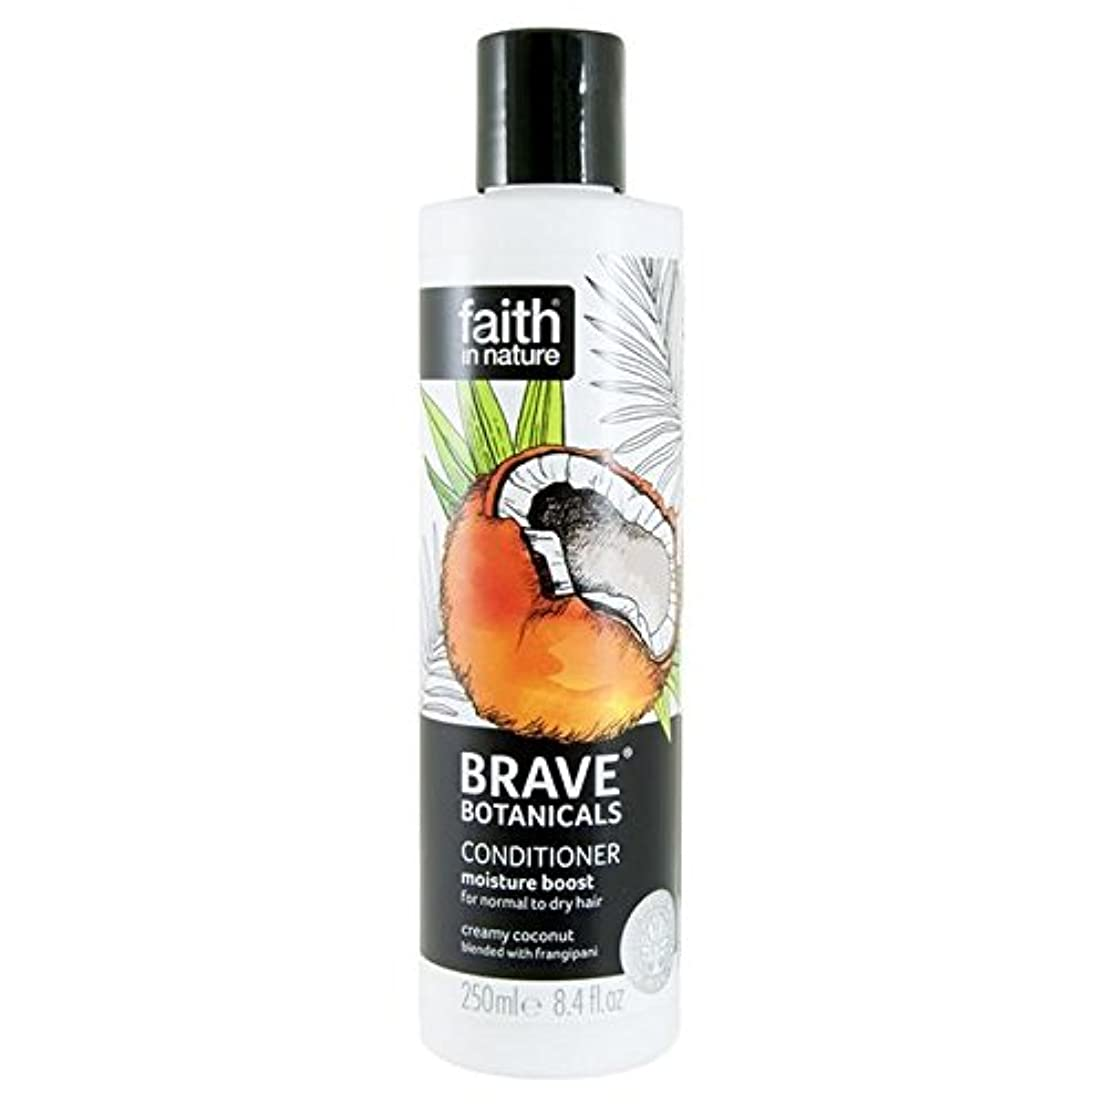 うれしい中間呼吸Brave Botanicals Coconut & Frangipani Moisture Boost Conditioner 250ml (Pack of 4) - (Faith In Nature) 勇敢な植物ココナッツ...